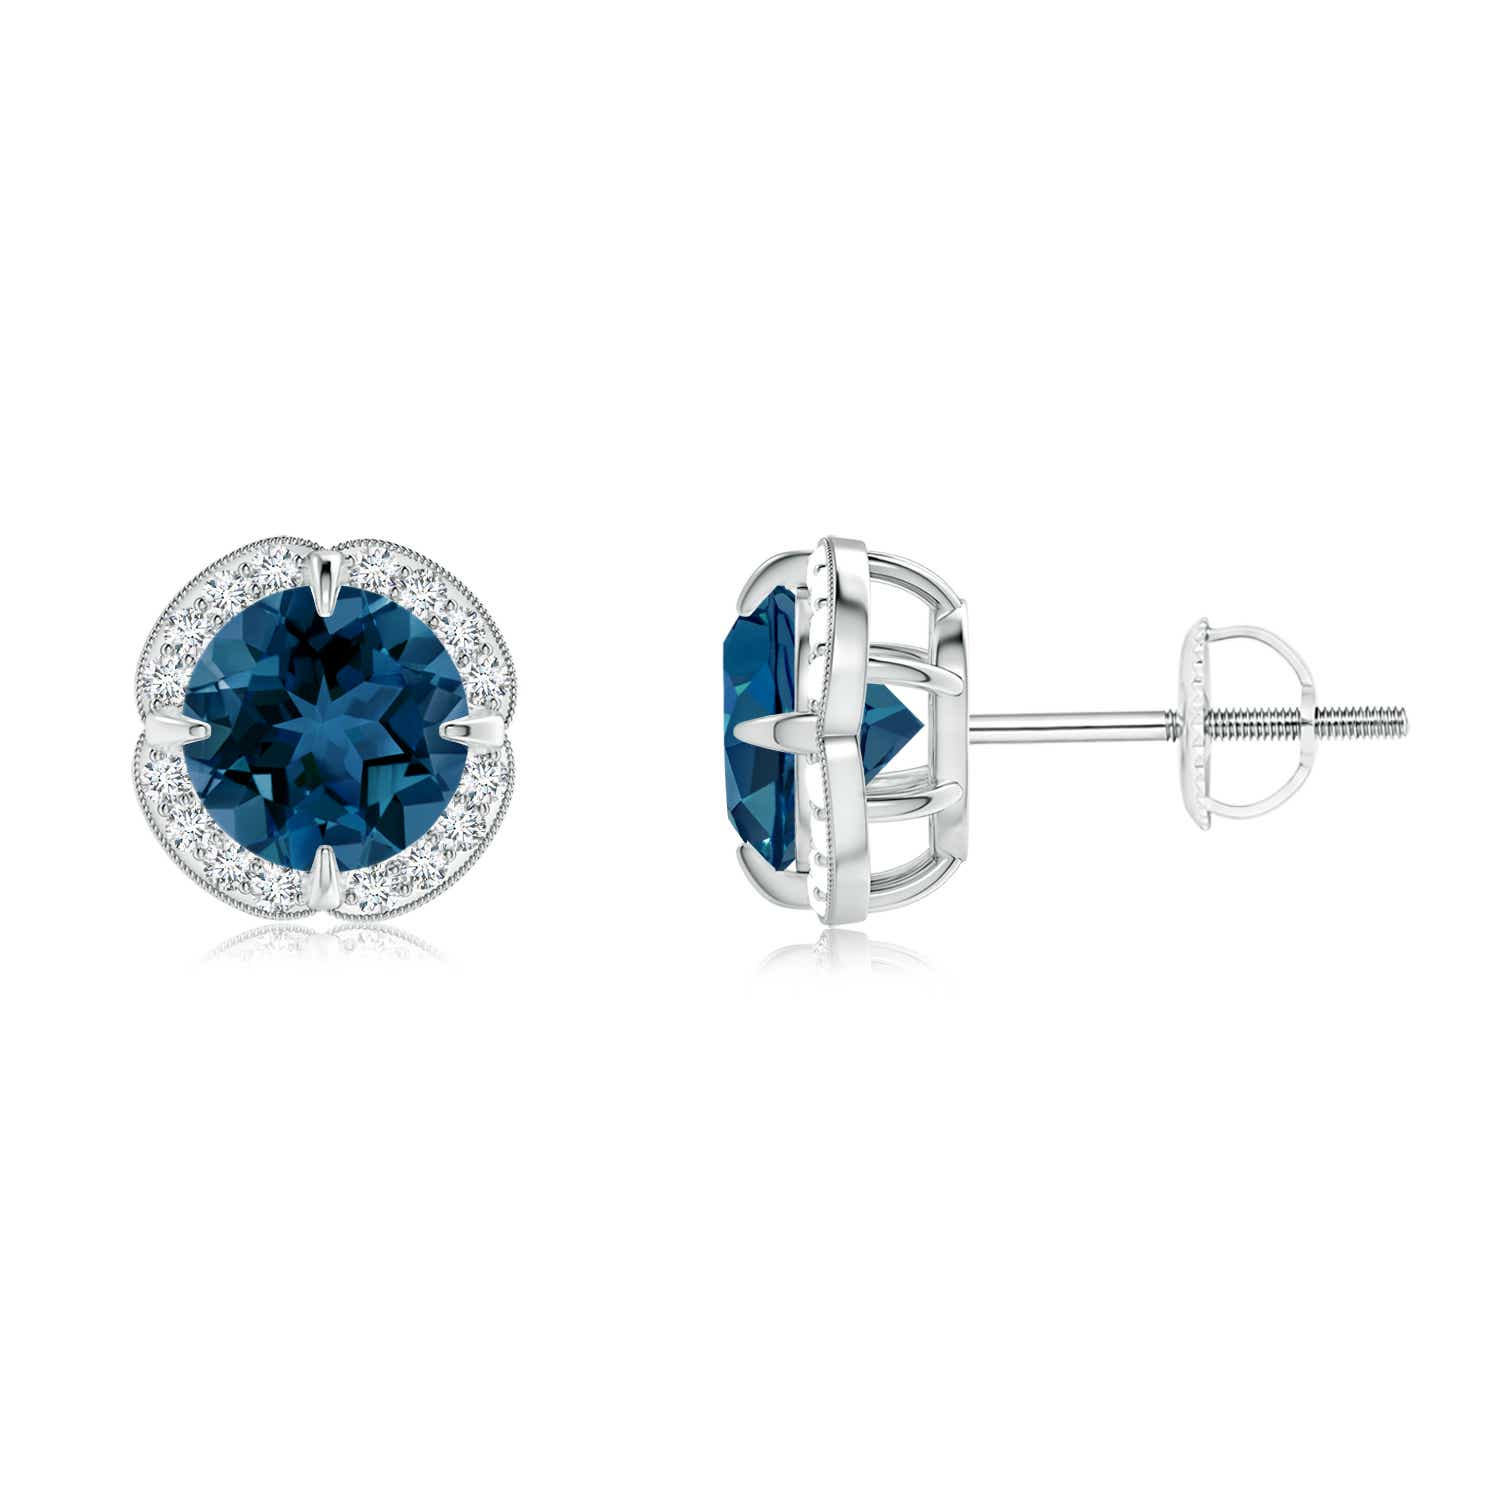 Angara Claw-Set London Blue Topaz Solitaire Earrings H6q2m4